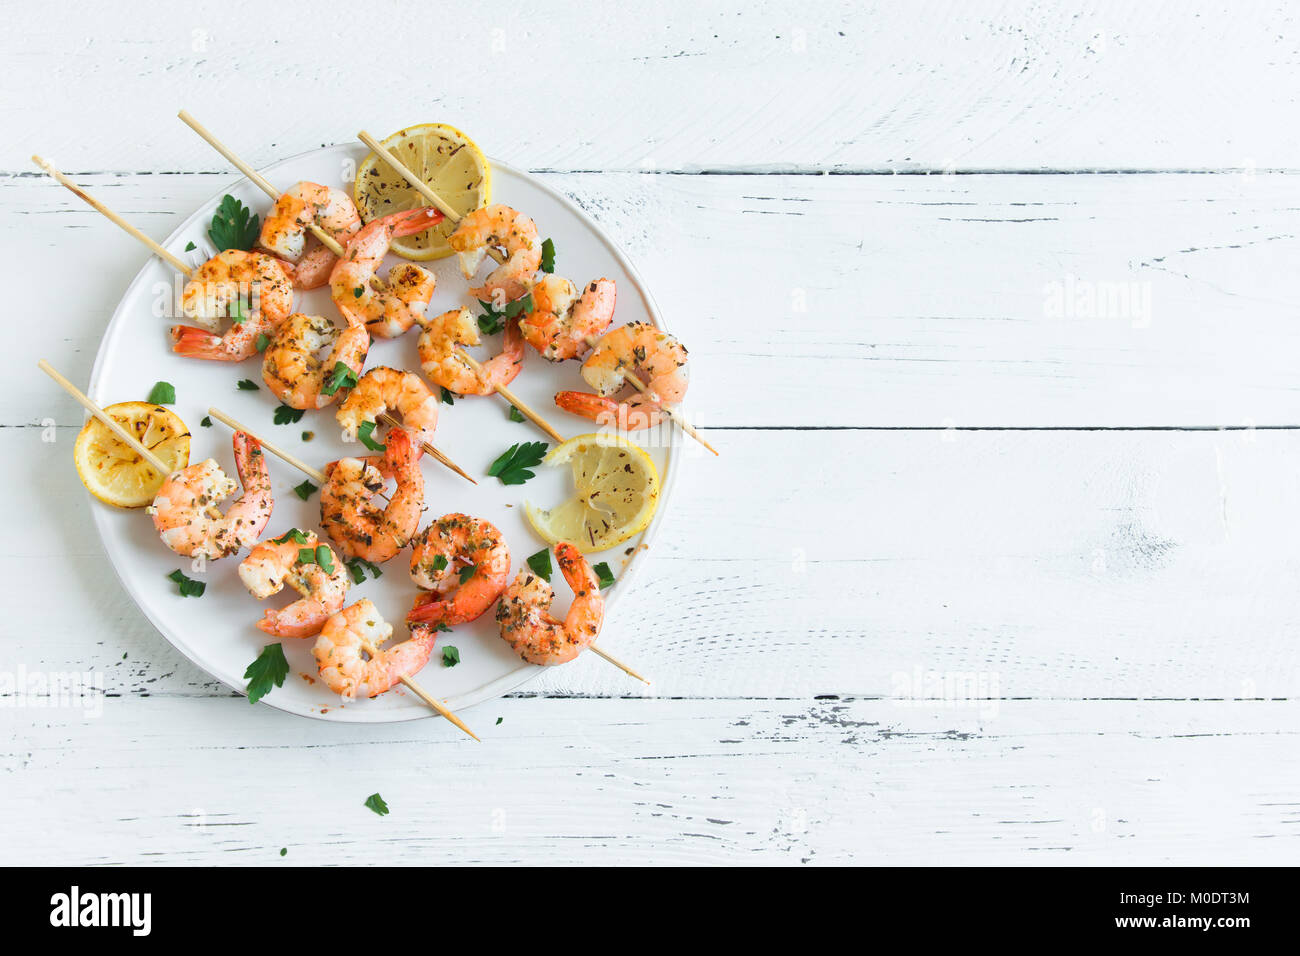 Grilled shrimp skewers. Seafood, shelfish. Shrimps Prawns skewers with spices and fresh herbs on white wooden background, - Stock Image